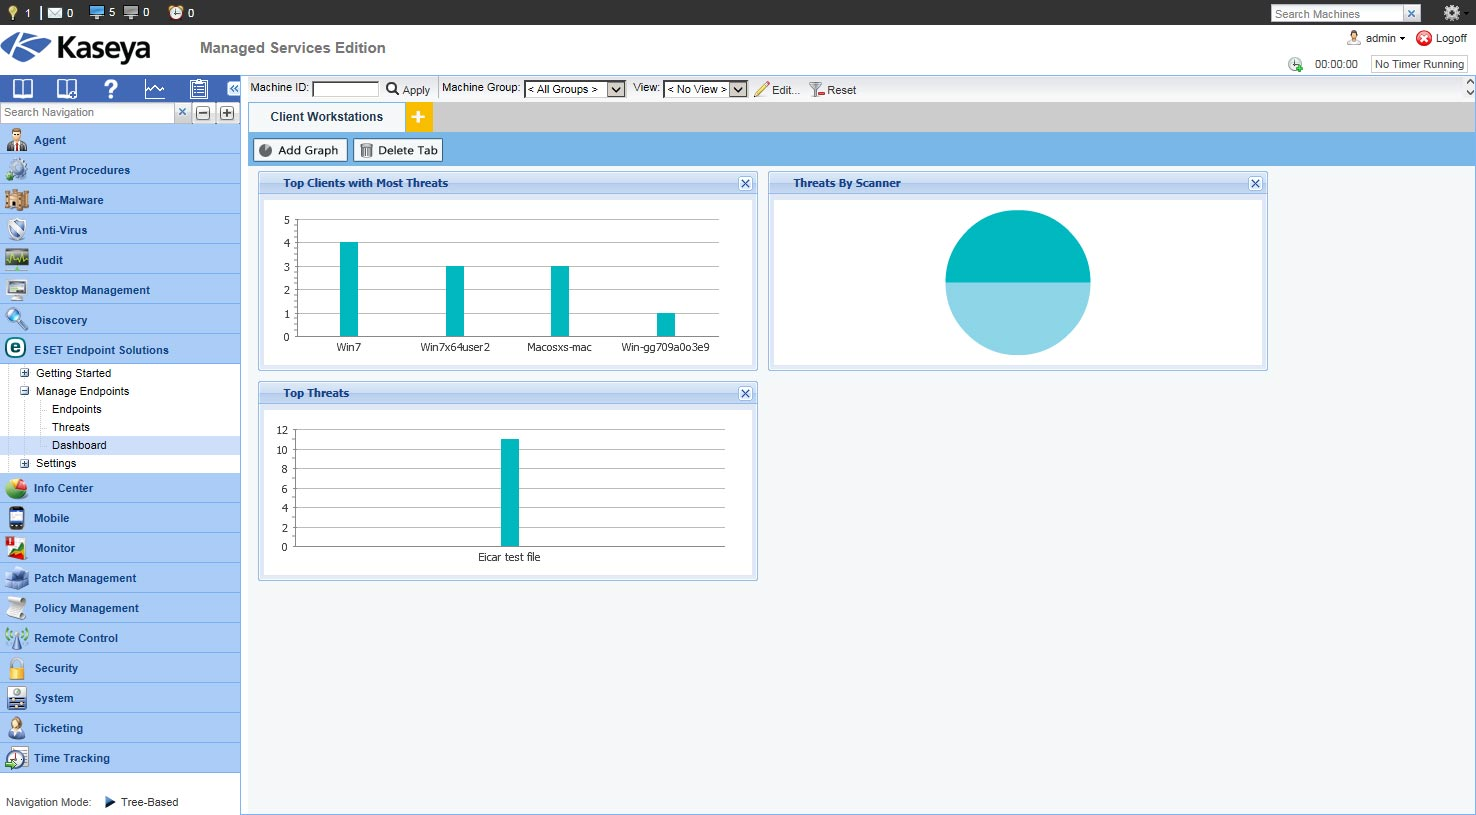 Set up and view multiple ESET dashboards for a quick visual indicator of your endpoint security status.